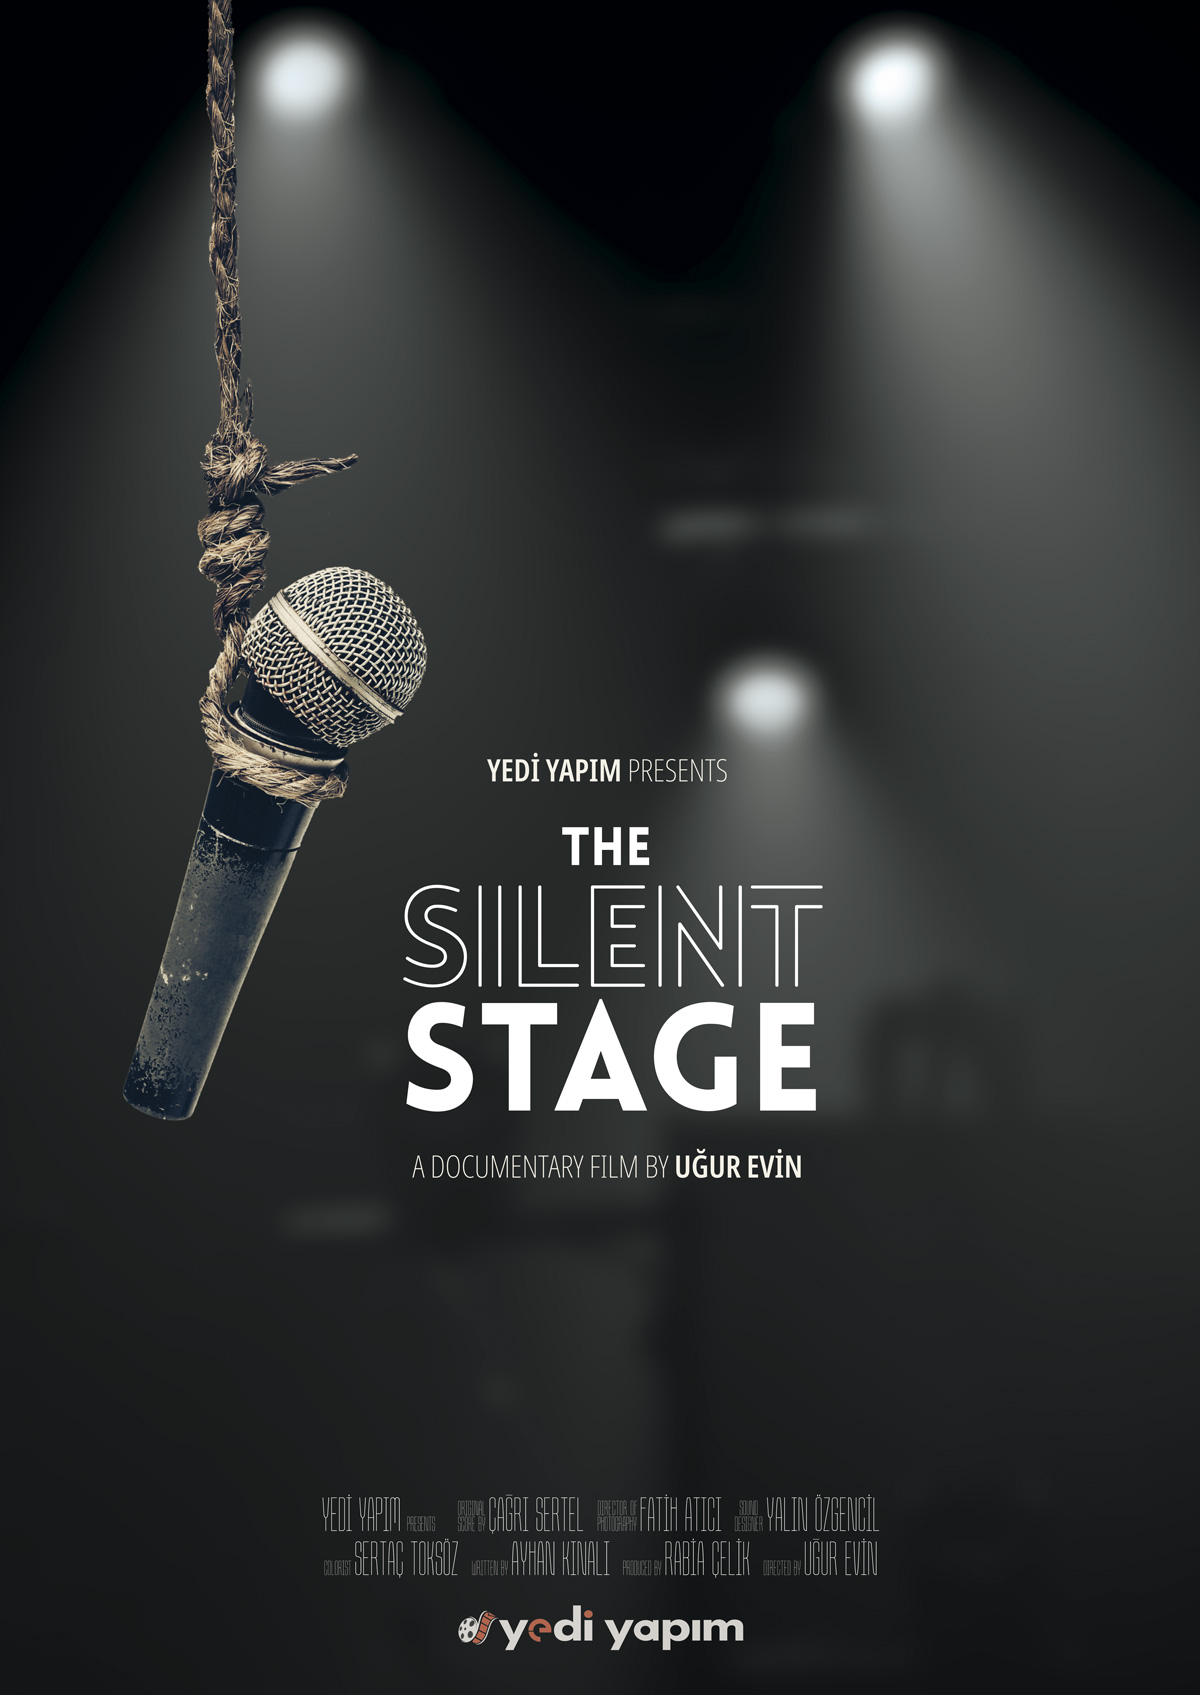 The Silent Stage